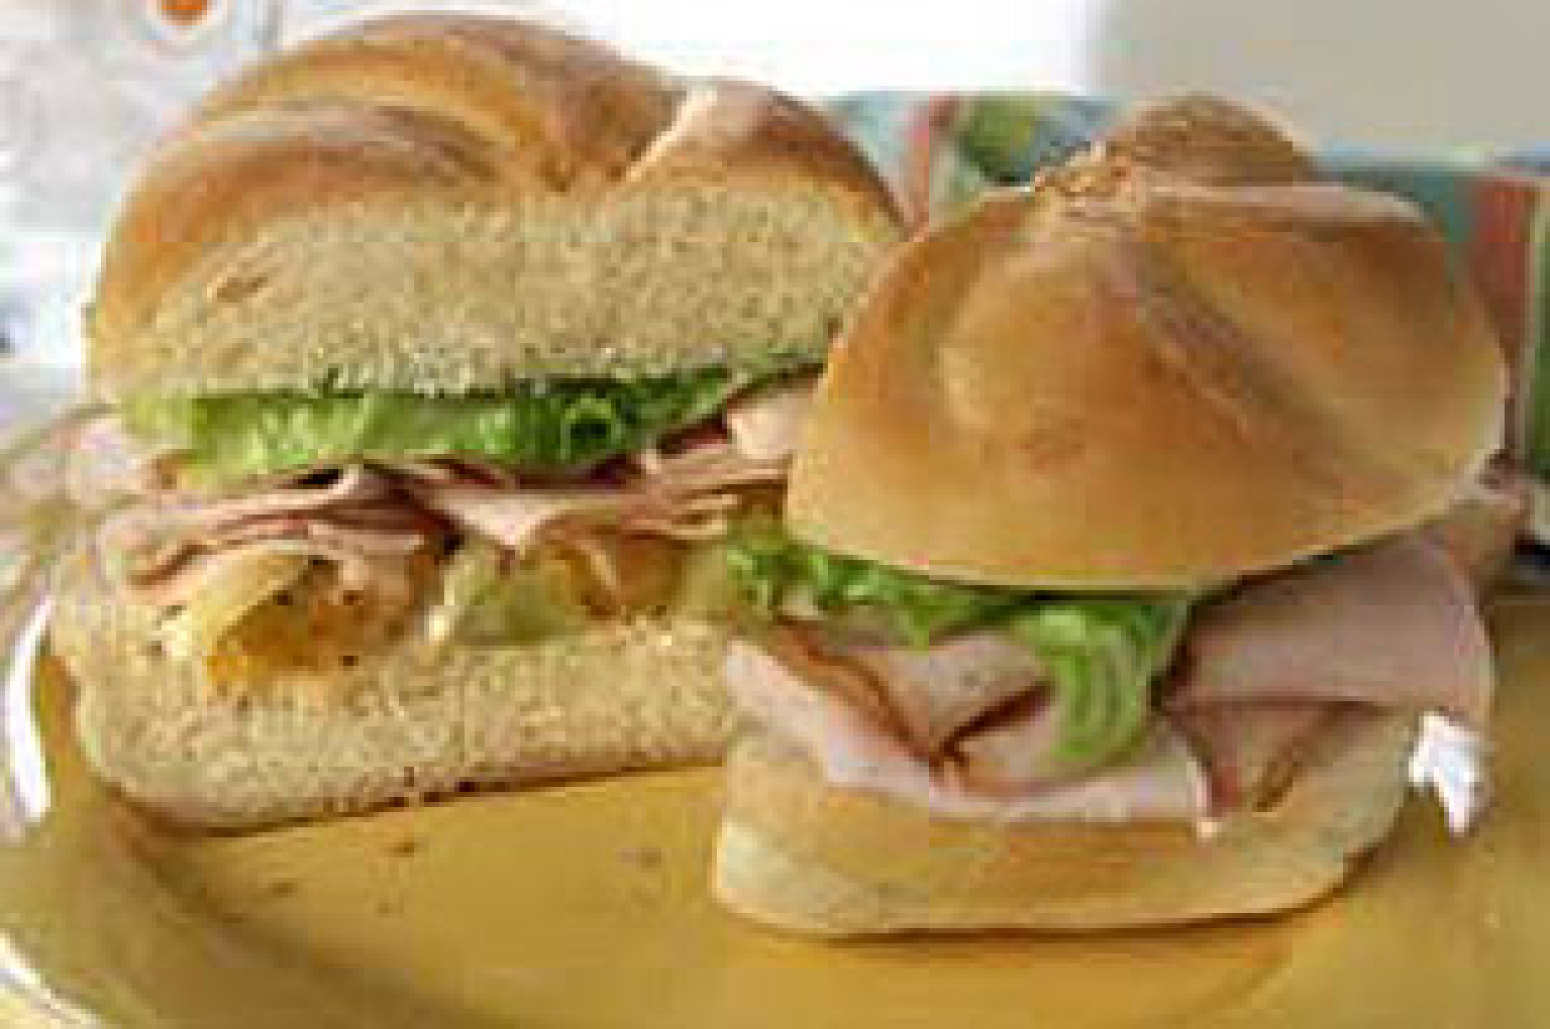 2006 09 03 archive likewise Sandwich De Huevo Jamon Y Queso 122698 furthermore Oscar Mayer Smoked Turkey Breas 1717 likewise Italian Pepperoni Sandwich together with Chipotle Gouda Turkey Grilled Cheese. on oscar mayer sandwich recipes